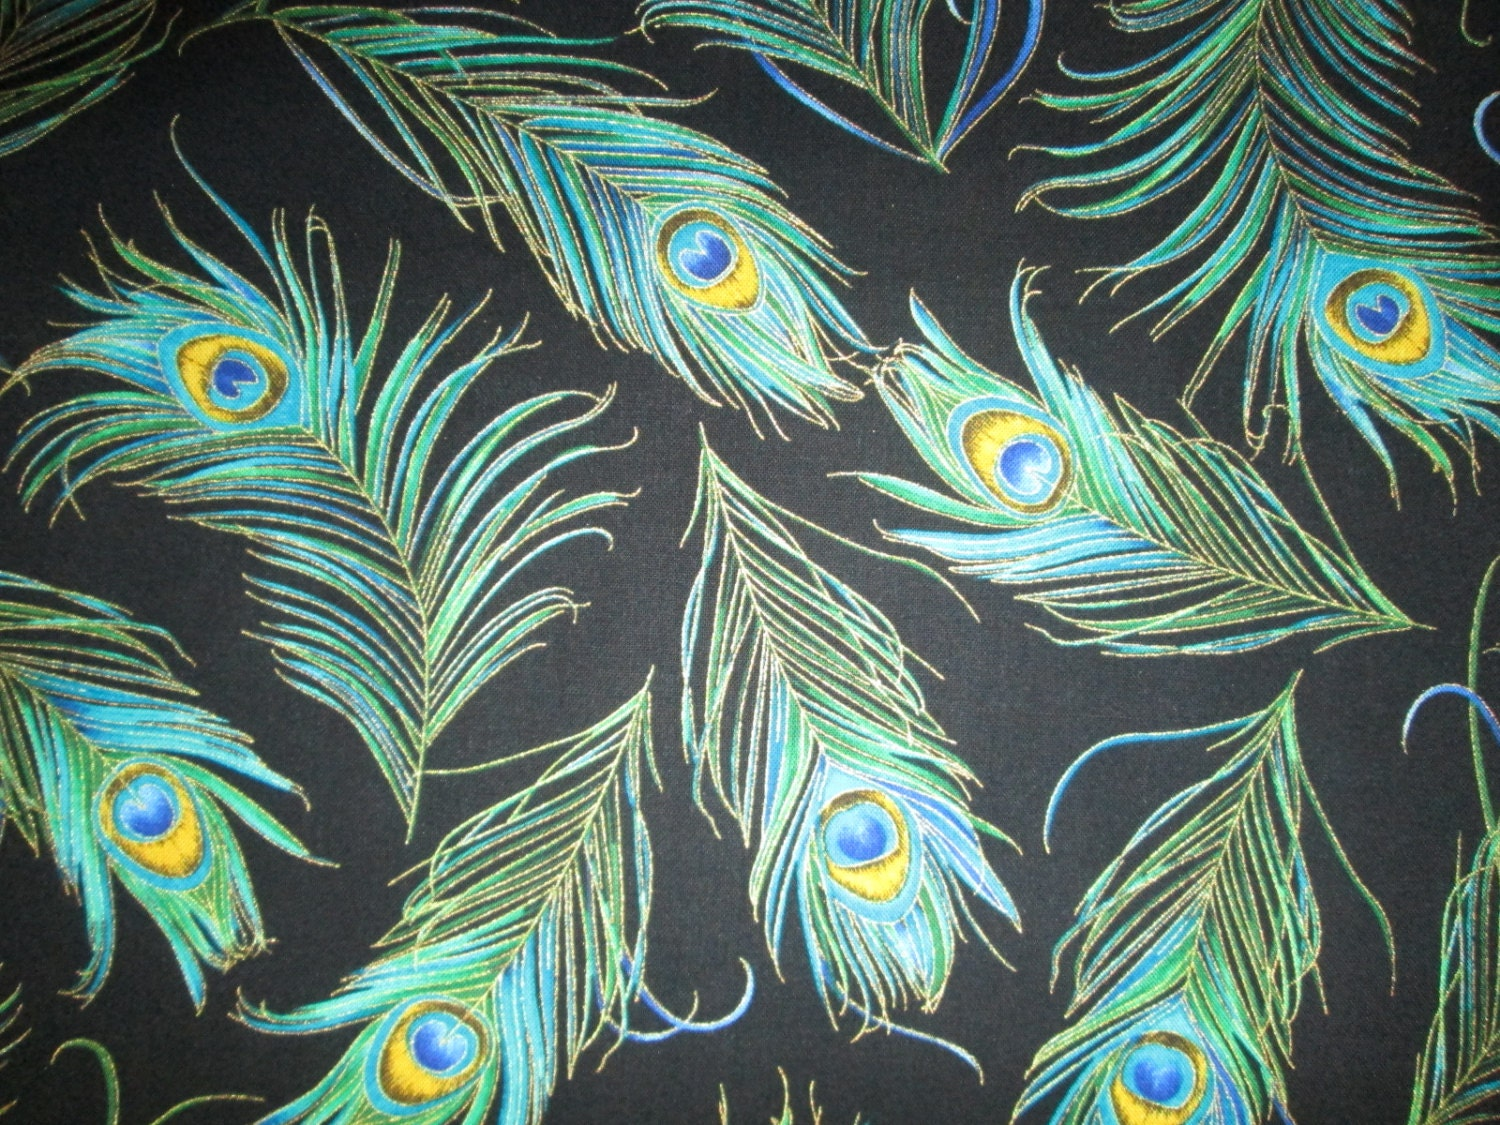 Peacock Feathers Teal Blue Green Gold Metallic Black Cotton